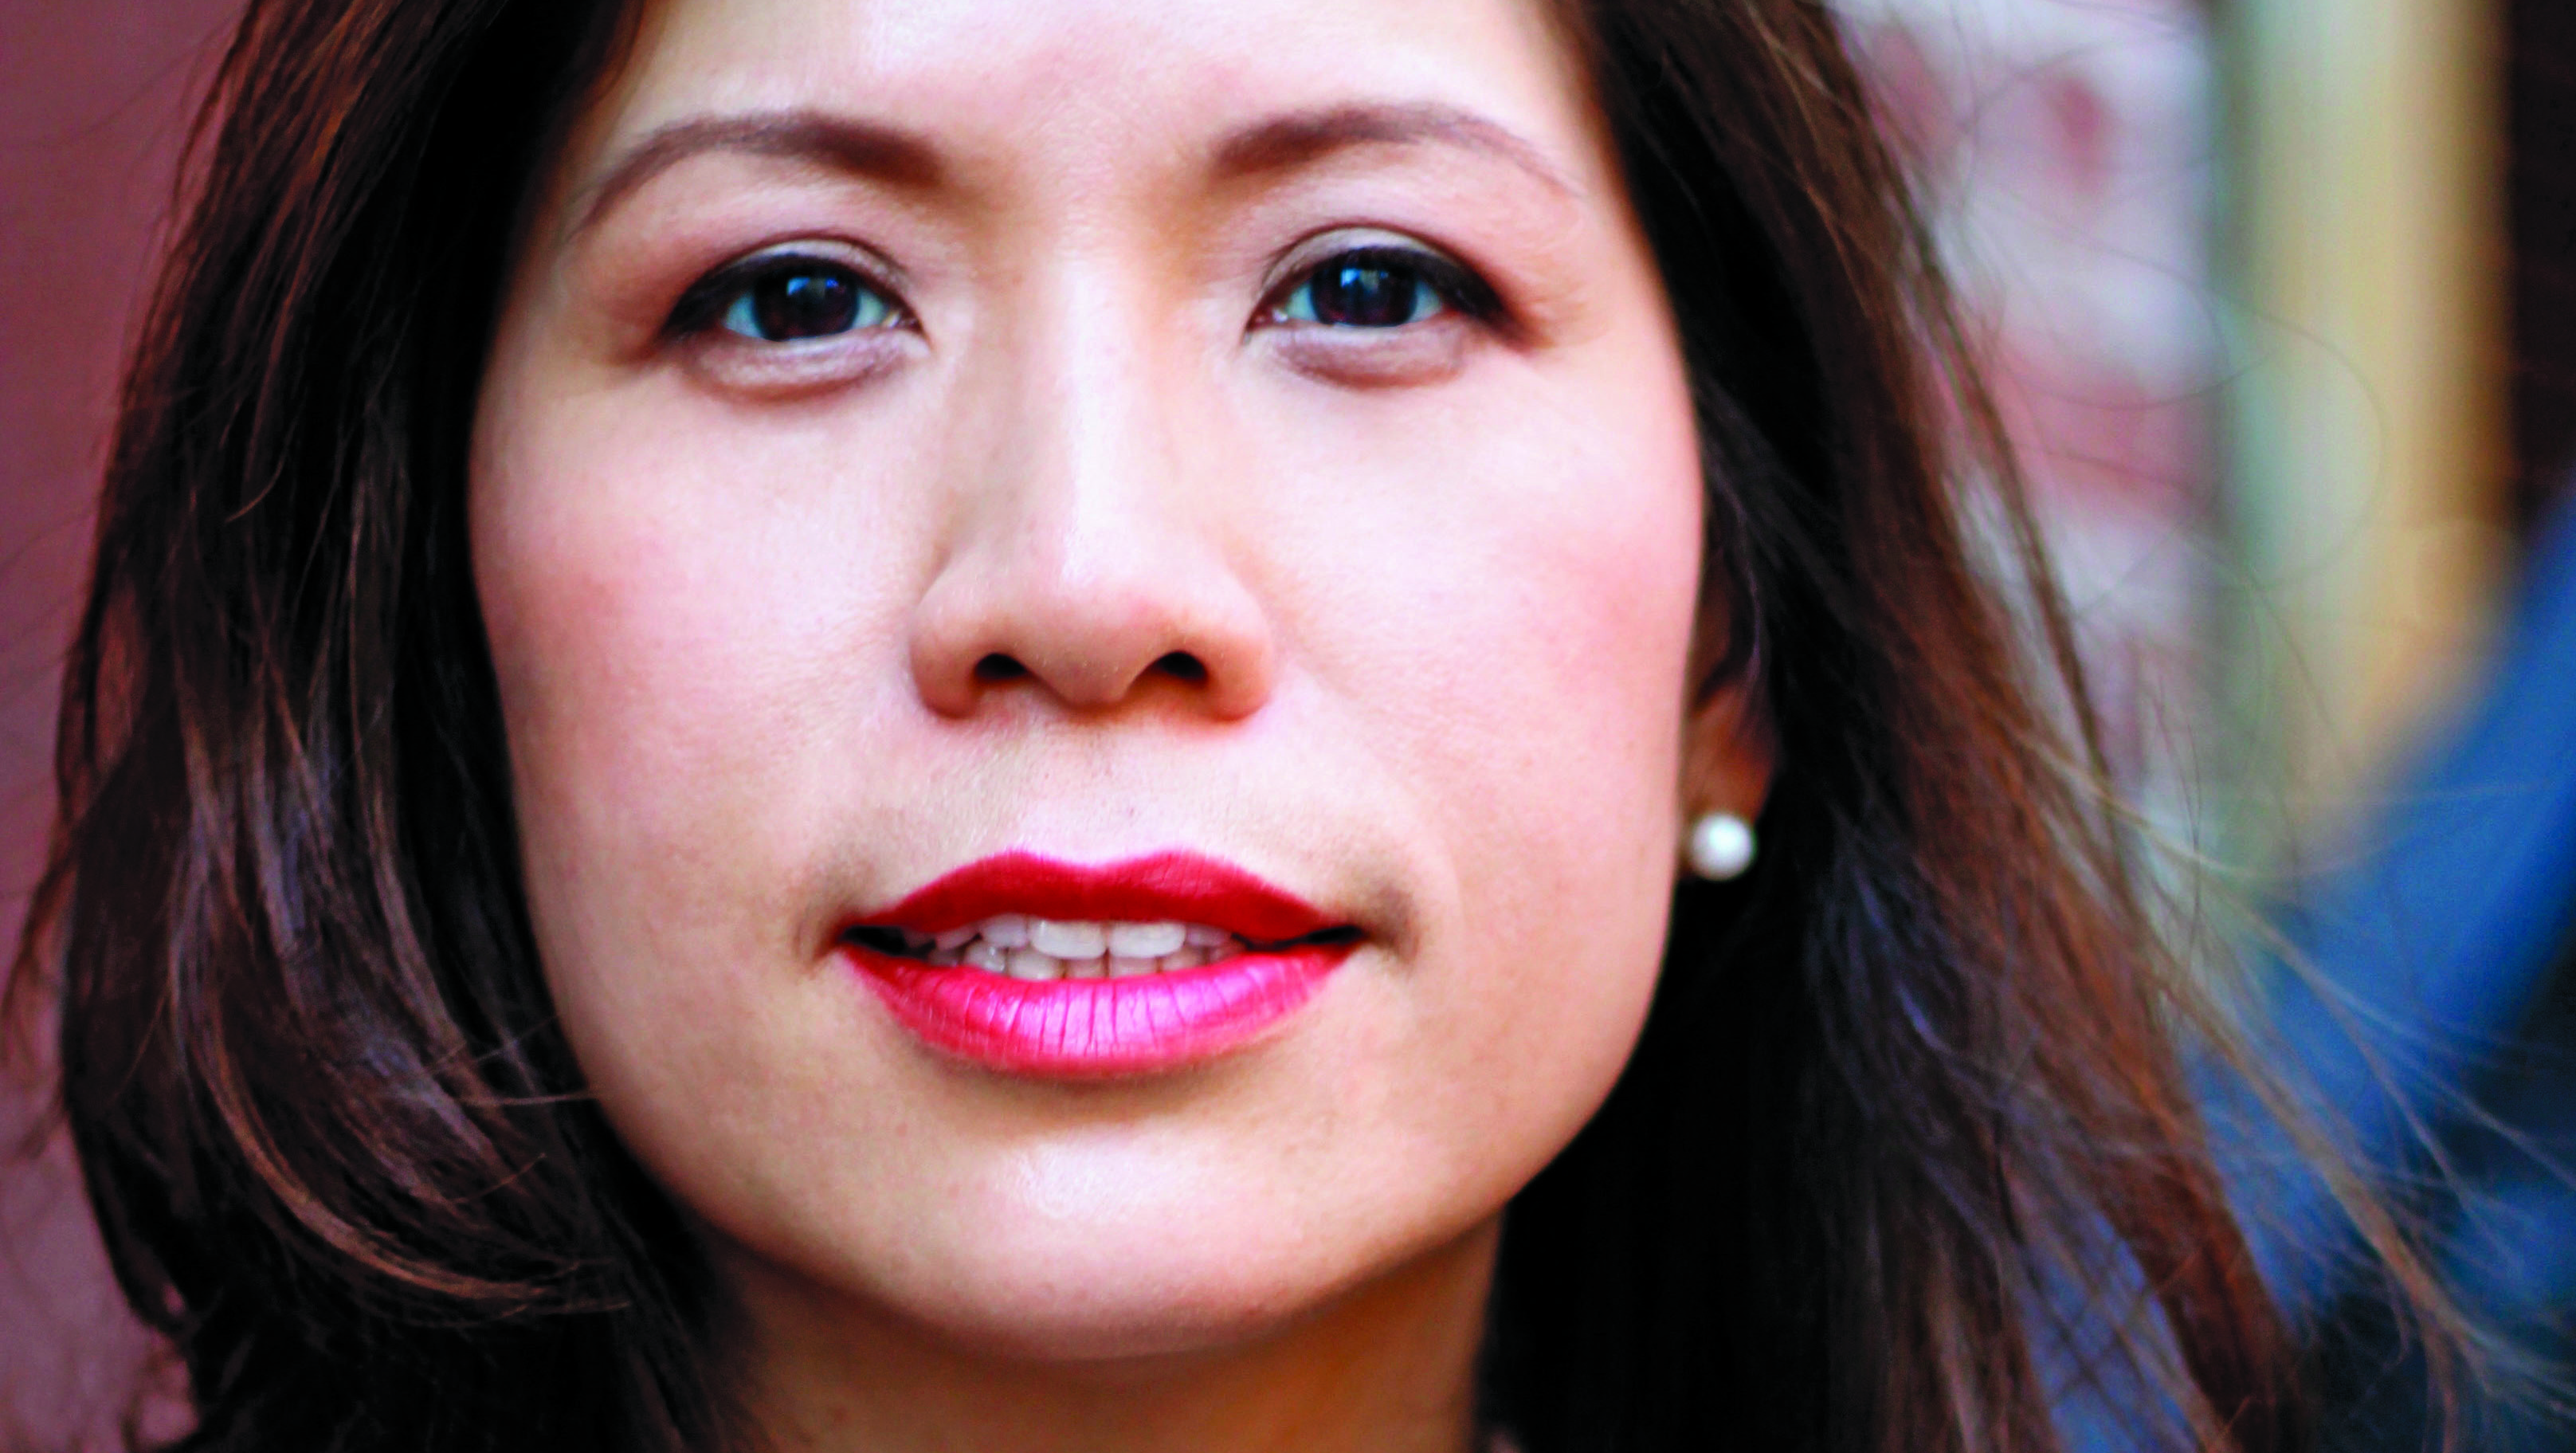 Pauline A. Chen, author of The Red Chamber, studied Chinese literature as a doctoral student at Princeton University.